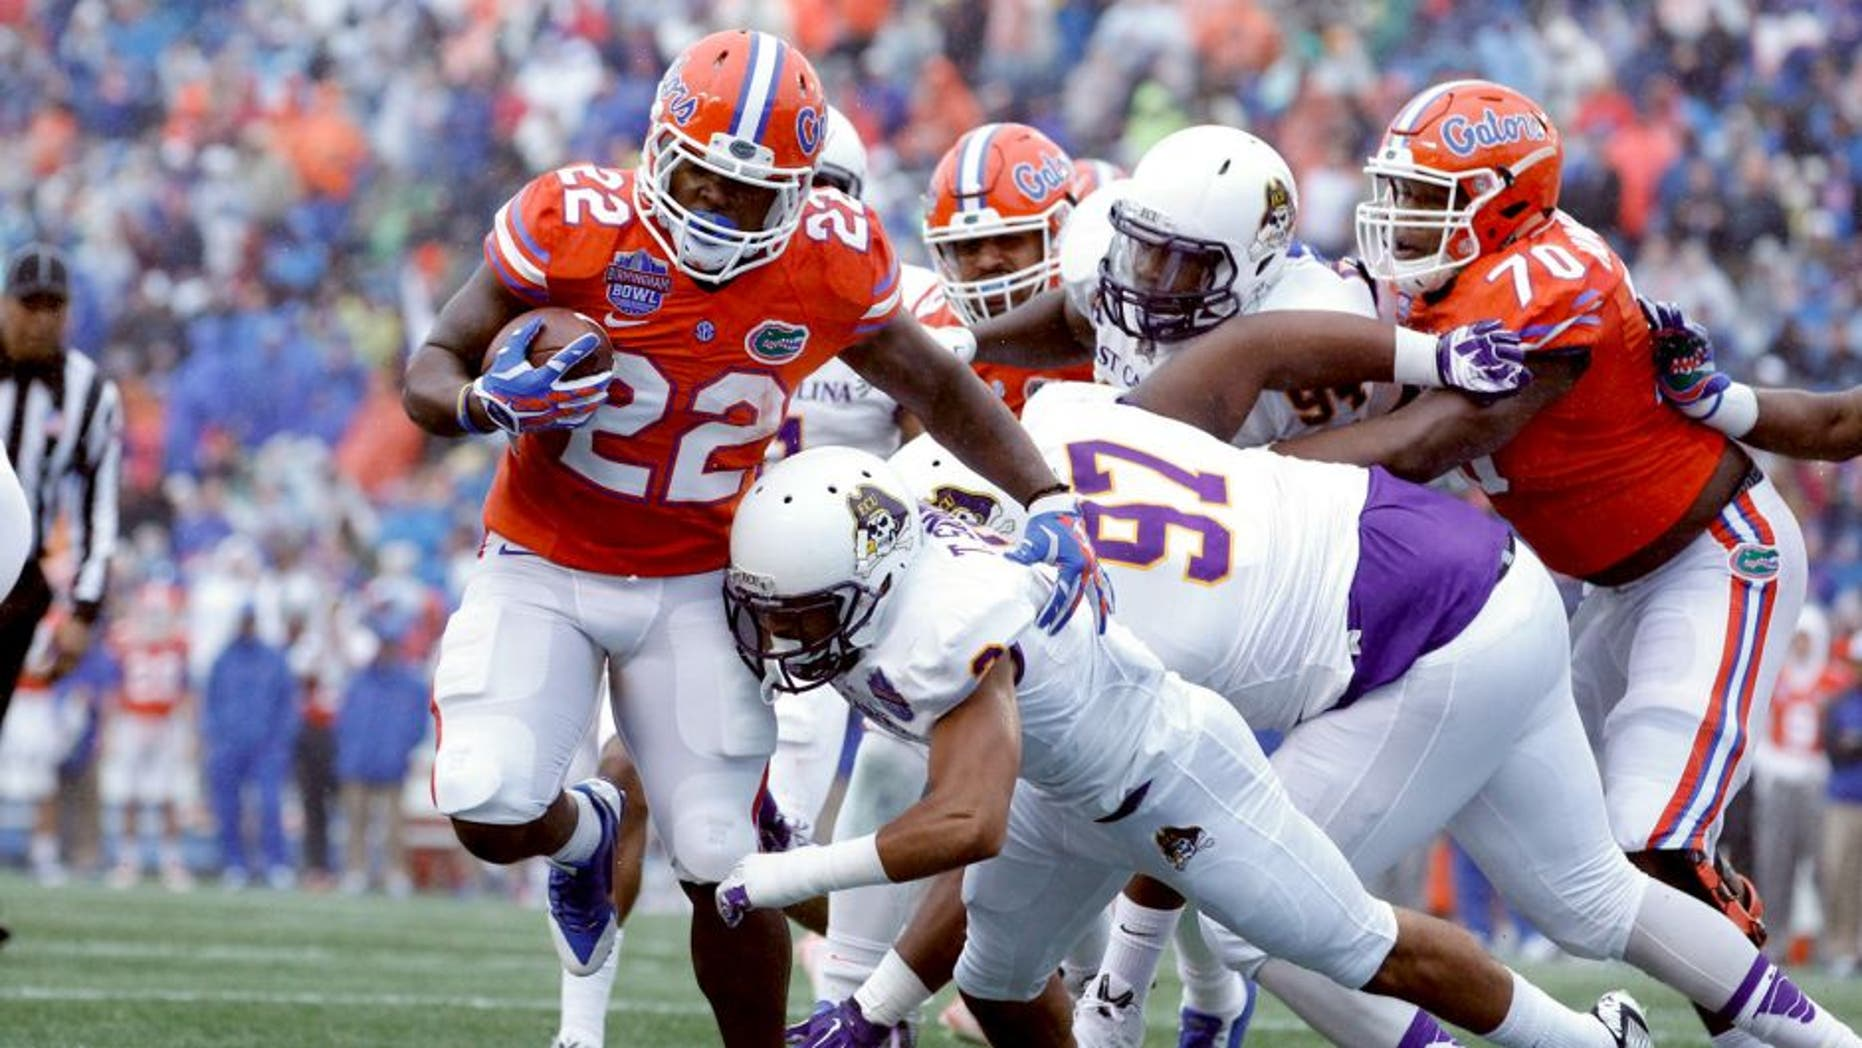 Jan 3, 2015; Birmingham, AL, USA; Florida Gators running back Adam Lane (22) is hit by East Carolina Pirates defensive back Travon Simmons (3) as he scores a touchdown during the Birmingham Bowl at Legion Field. Mandatory Credit: Marvin Gentry-USA TODAY Sports